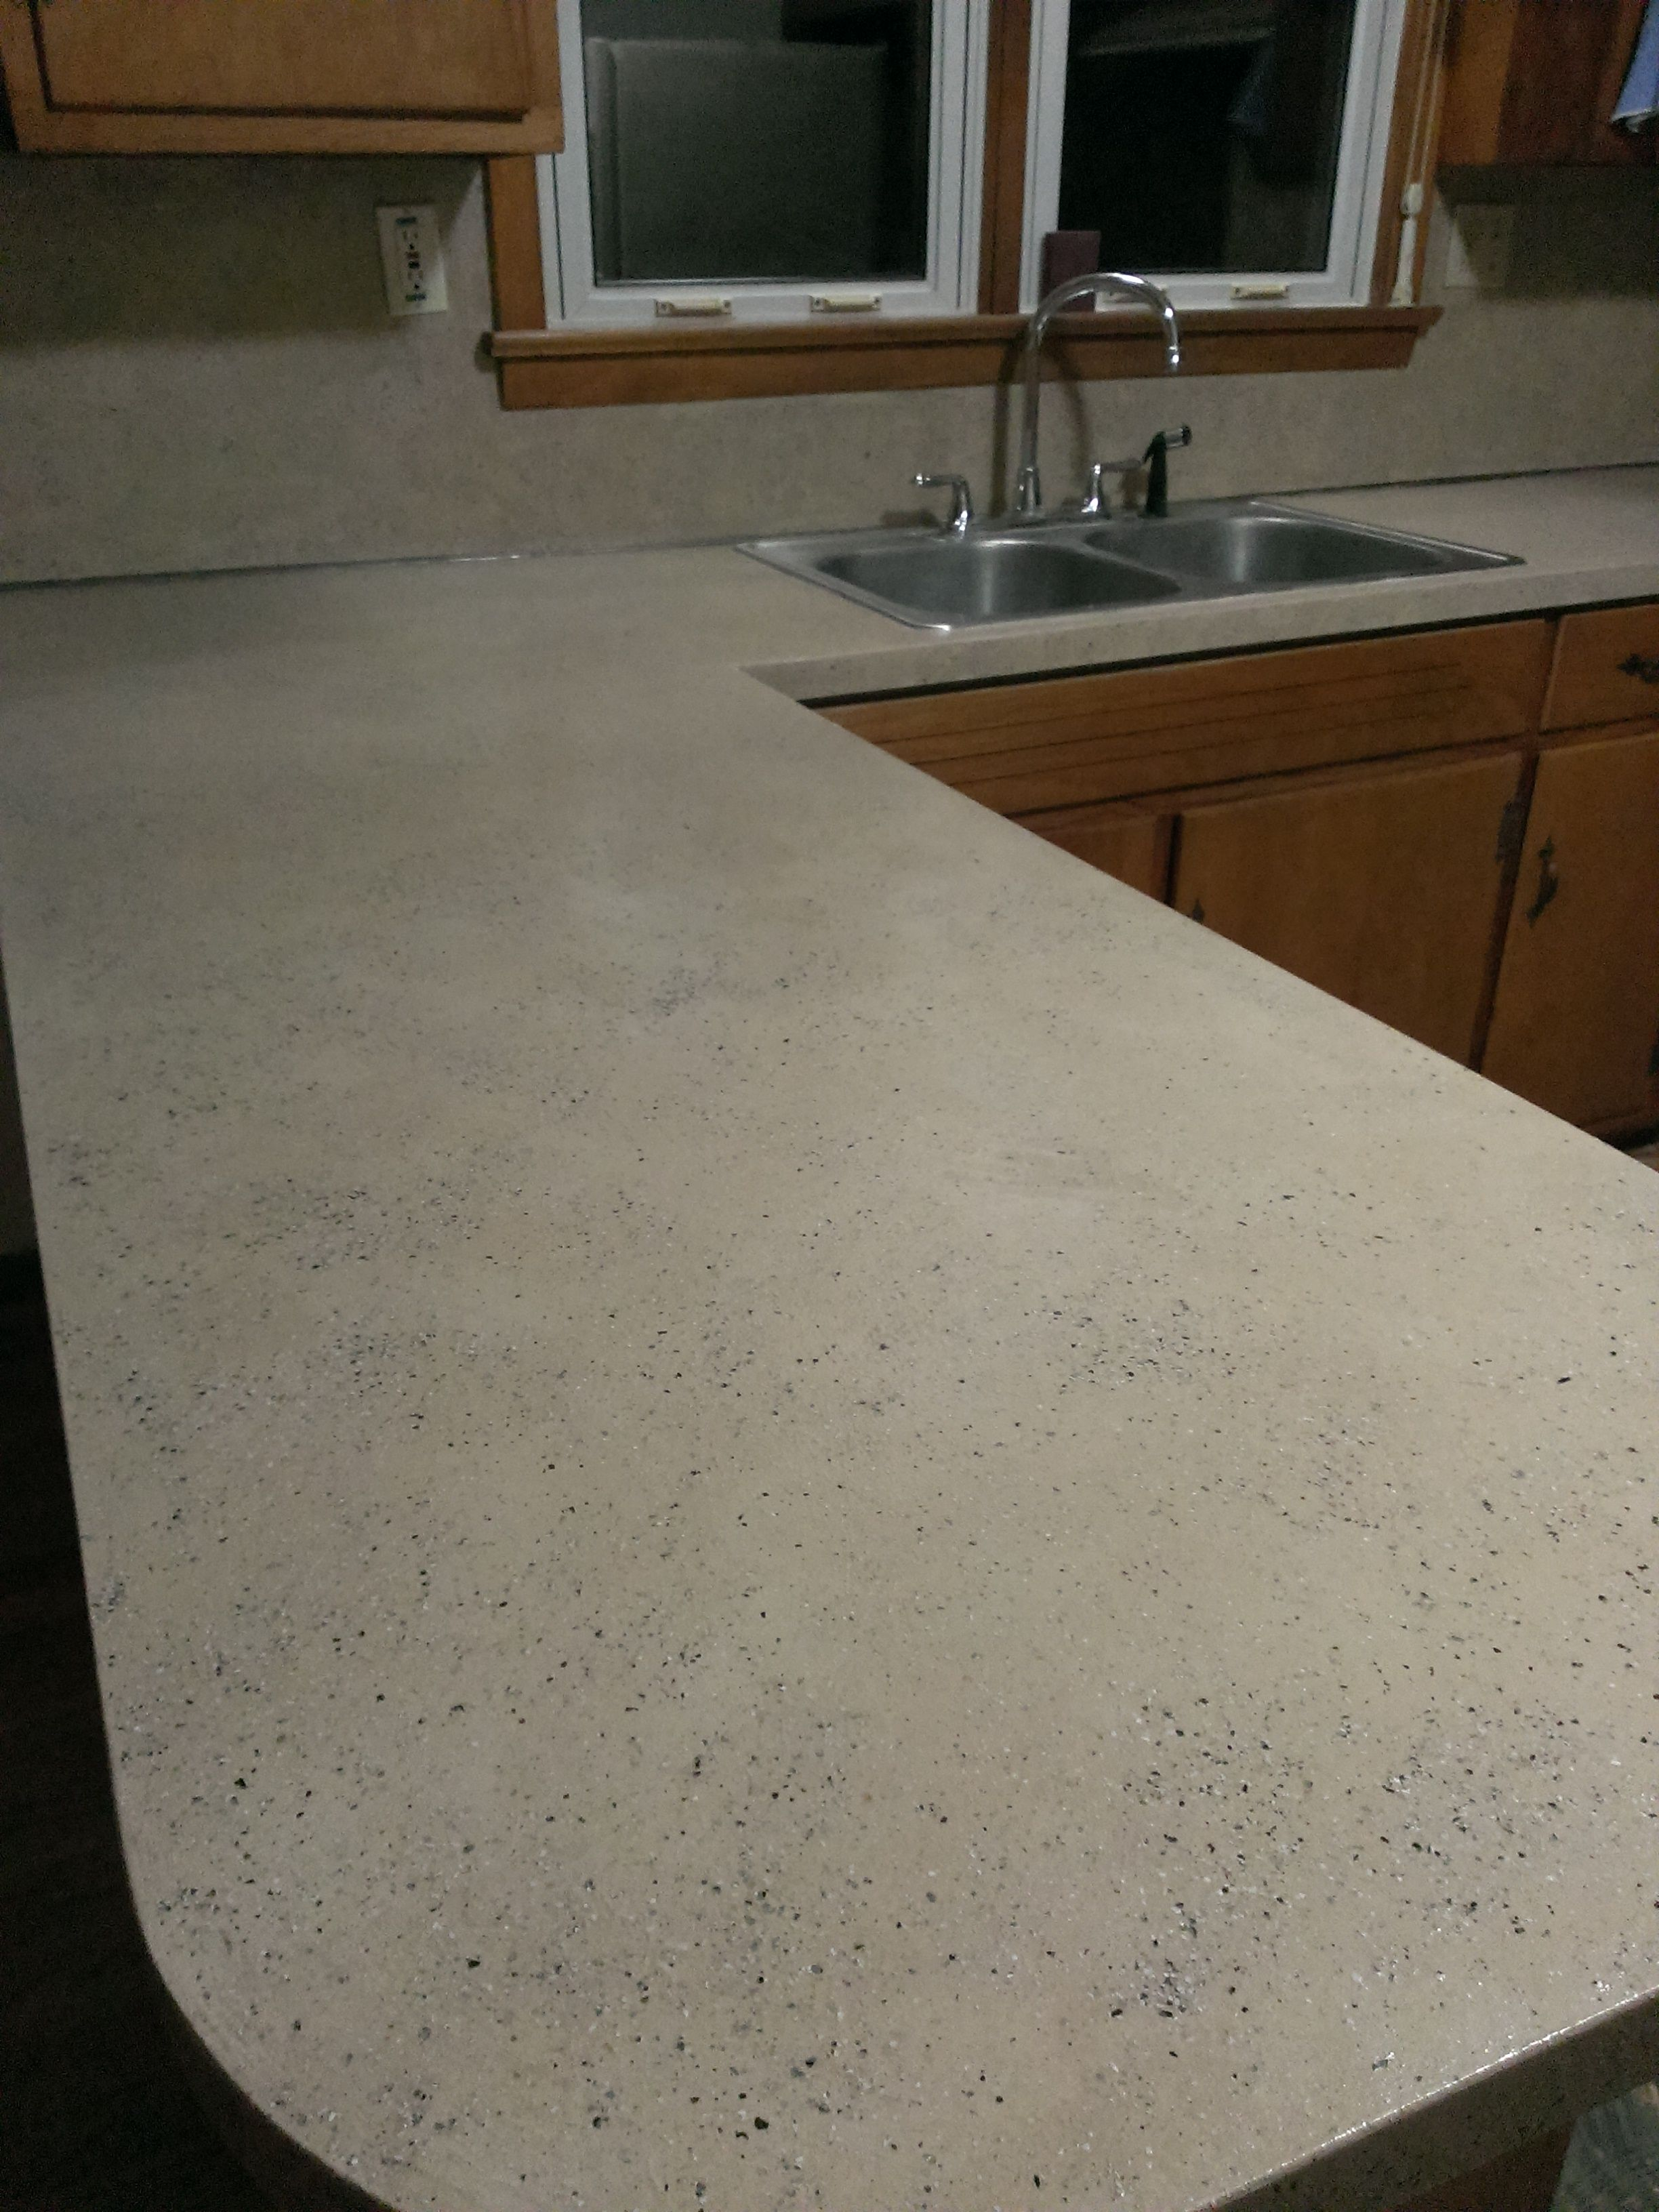 Use Daich Coatings To Paint Old Formica Laminate Countertops To